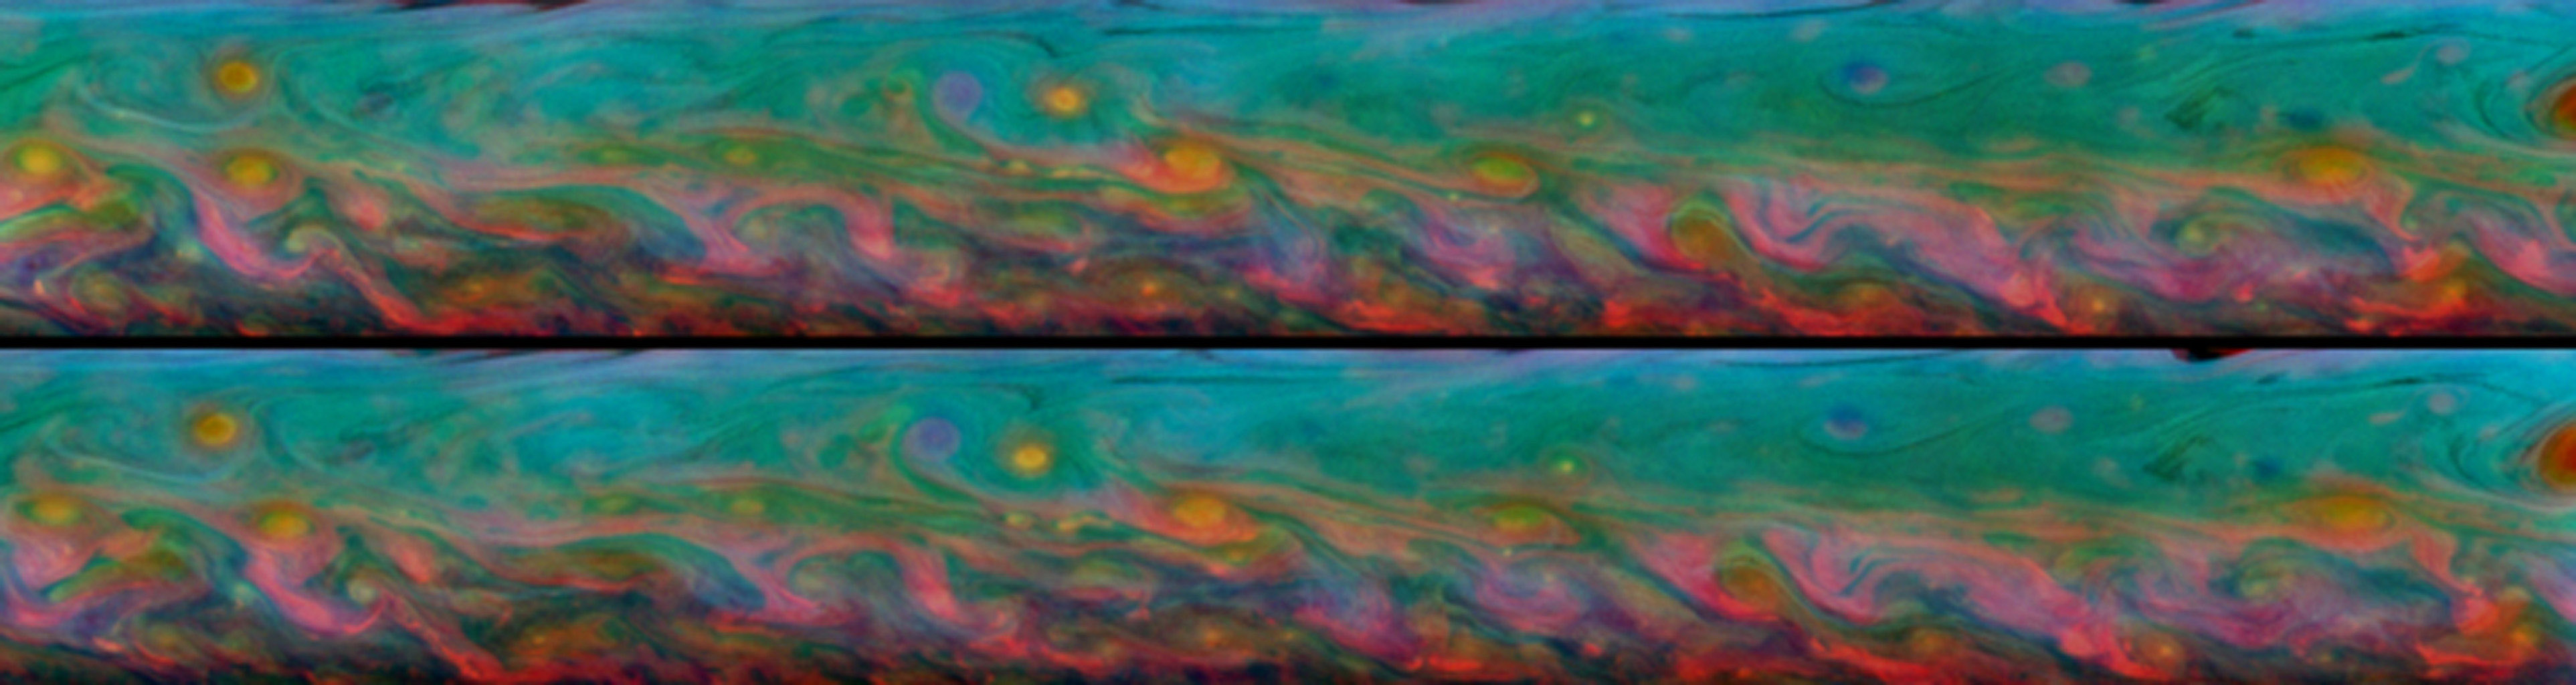 With kaleidoscopic forms and hues, these two false-color views from NASA's Cassini spacecraft show the patterns that come and go in the course of one Saturn day within the huge storm in the planet's northern hemisphere.